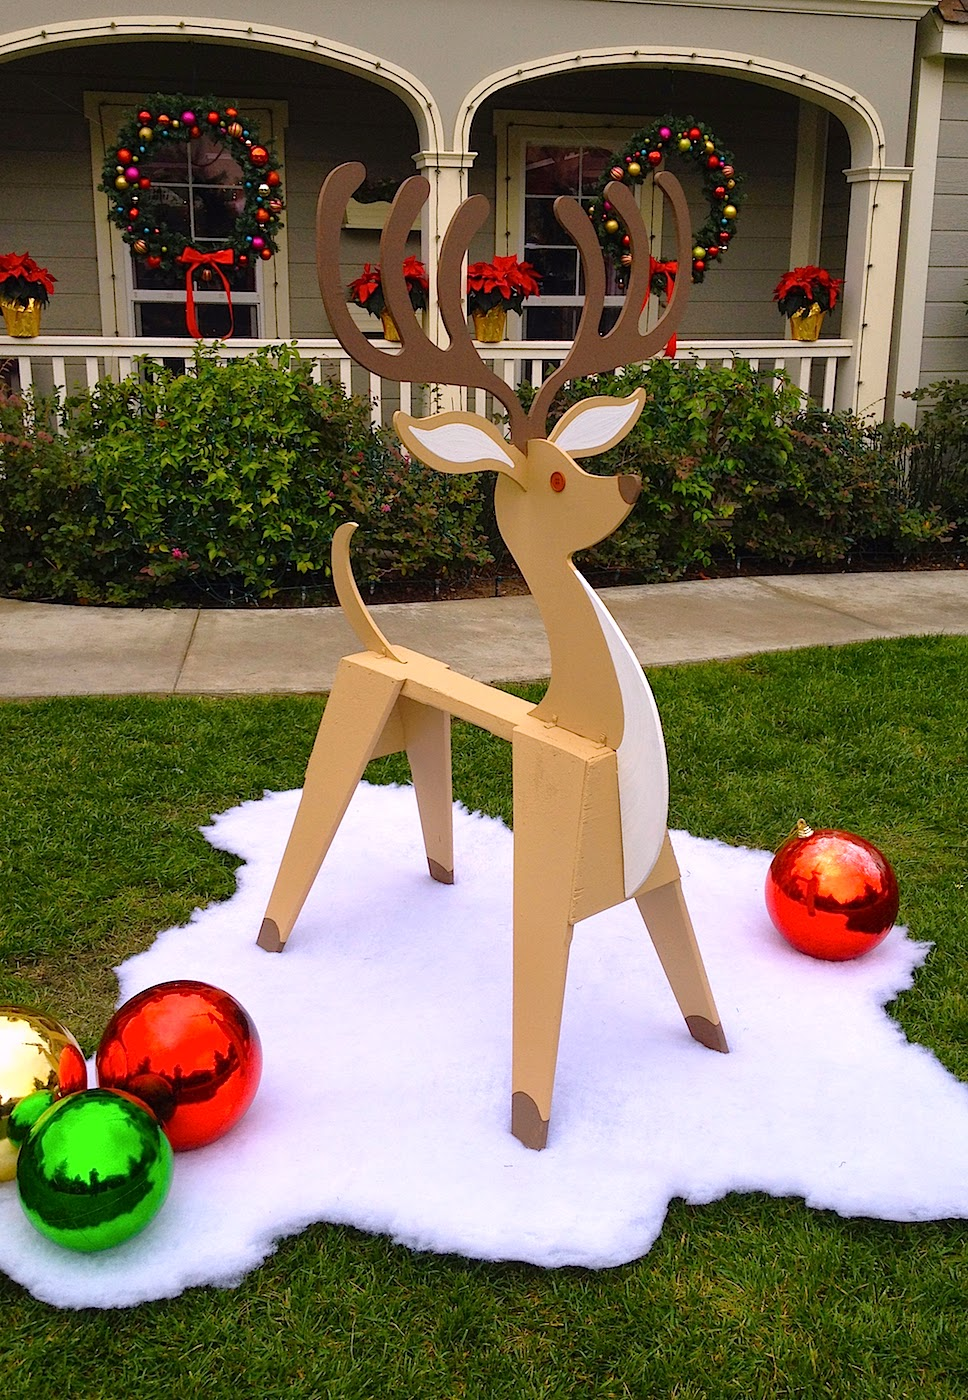 Dave lowe design the blog sawhorse reindeer how to for Holiday lawn decorations